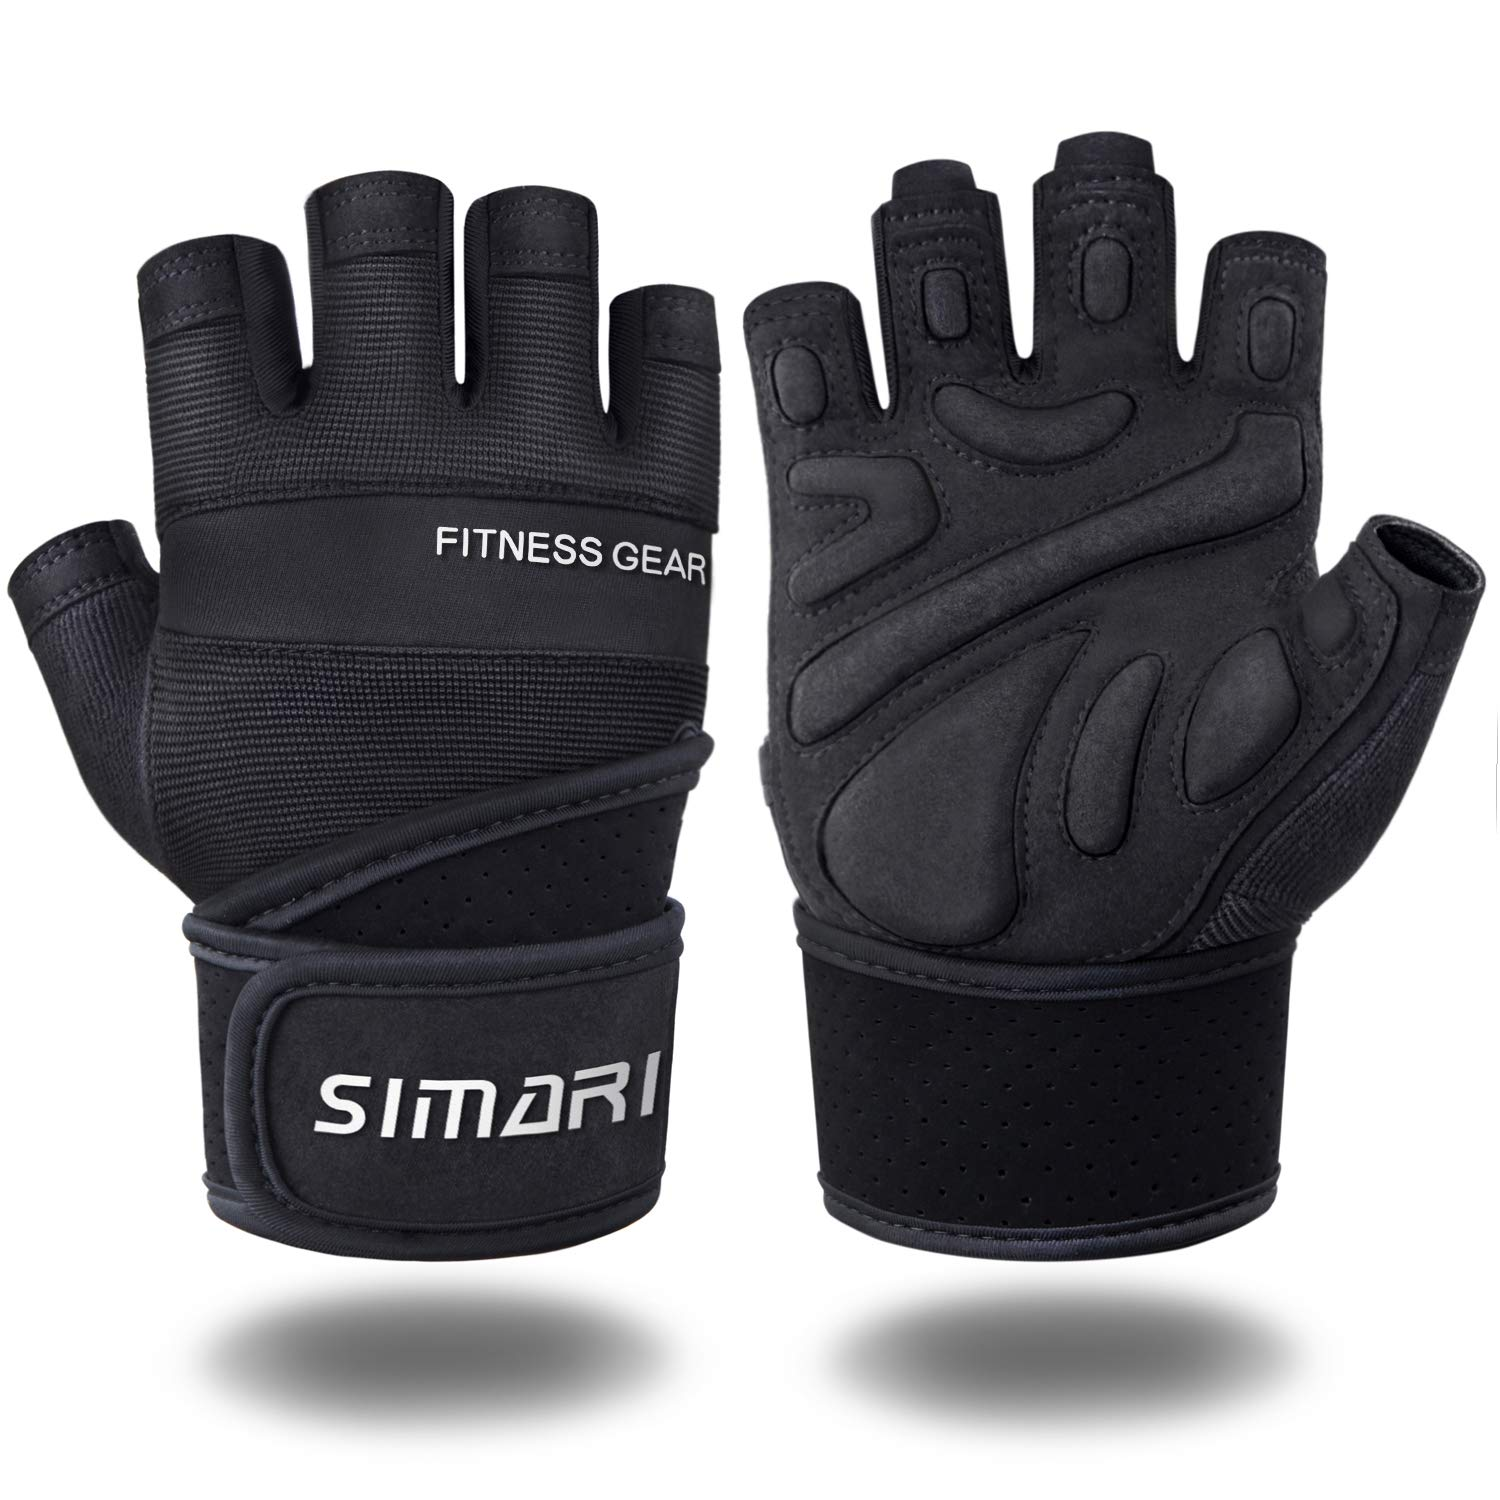 SIMARI Workout Gloves for Women Men,Training Gloves with Wrist Support for Fitness Exercise Weight Lifting Gym Crossfit,Made of Microfiber and Lycra SMRG904(Black S)